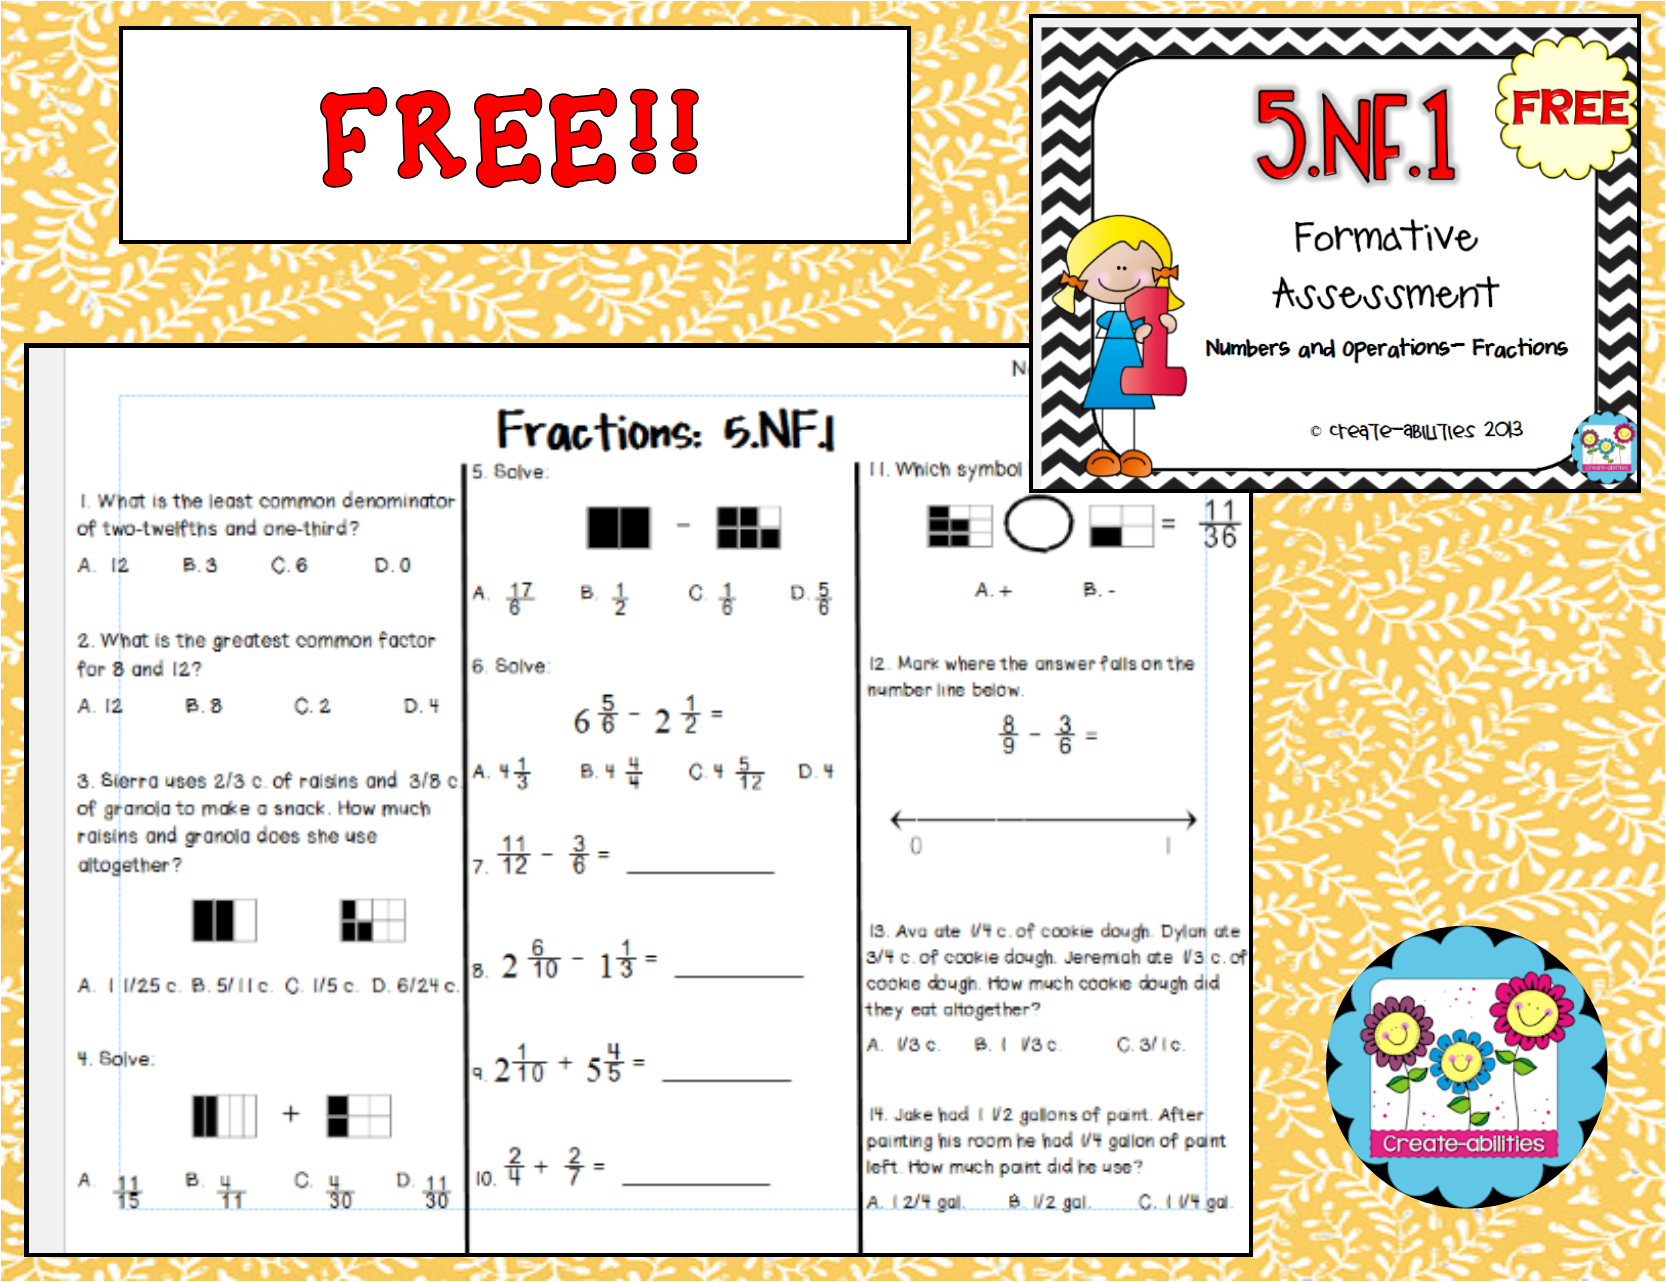 Free Nf Formative Assessment And Answer Key A Free